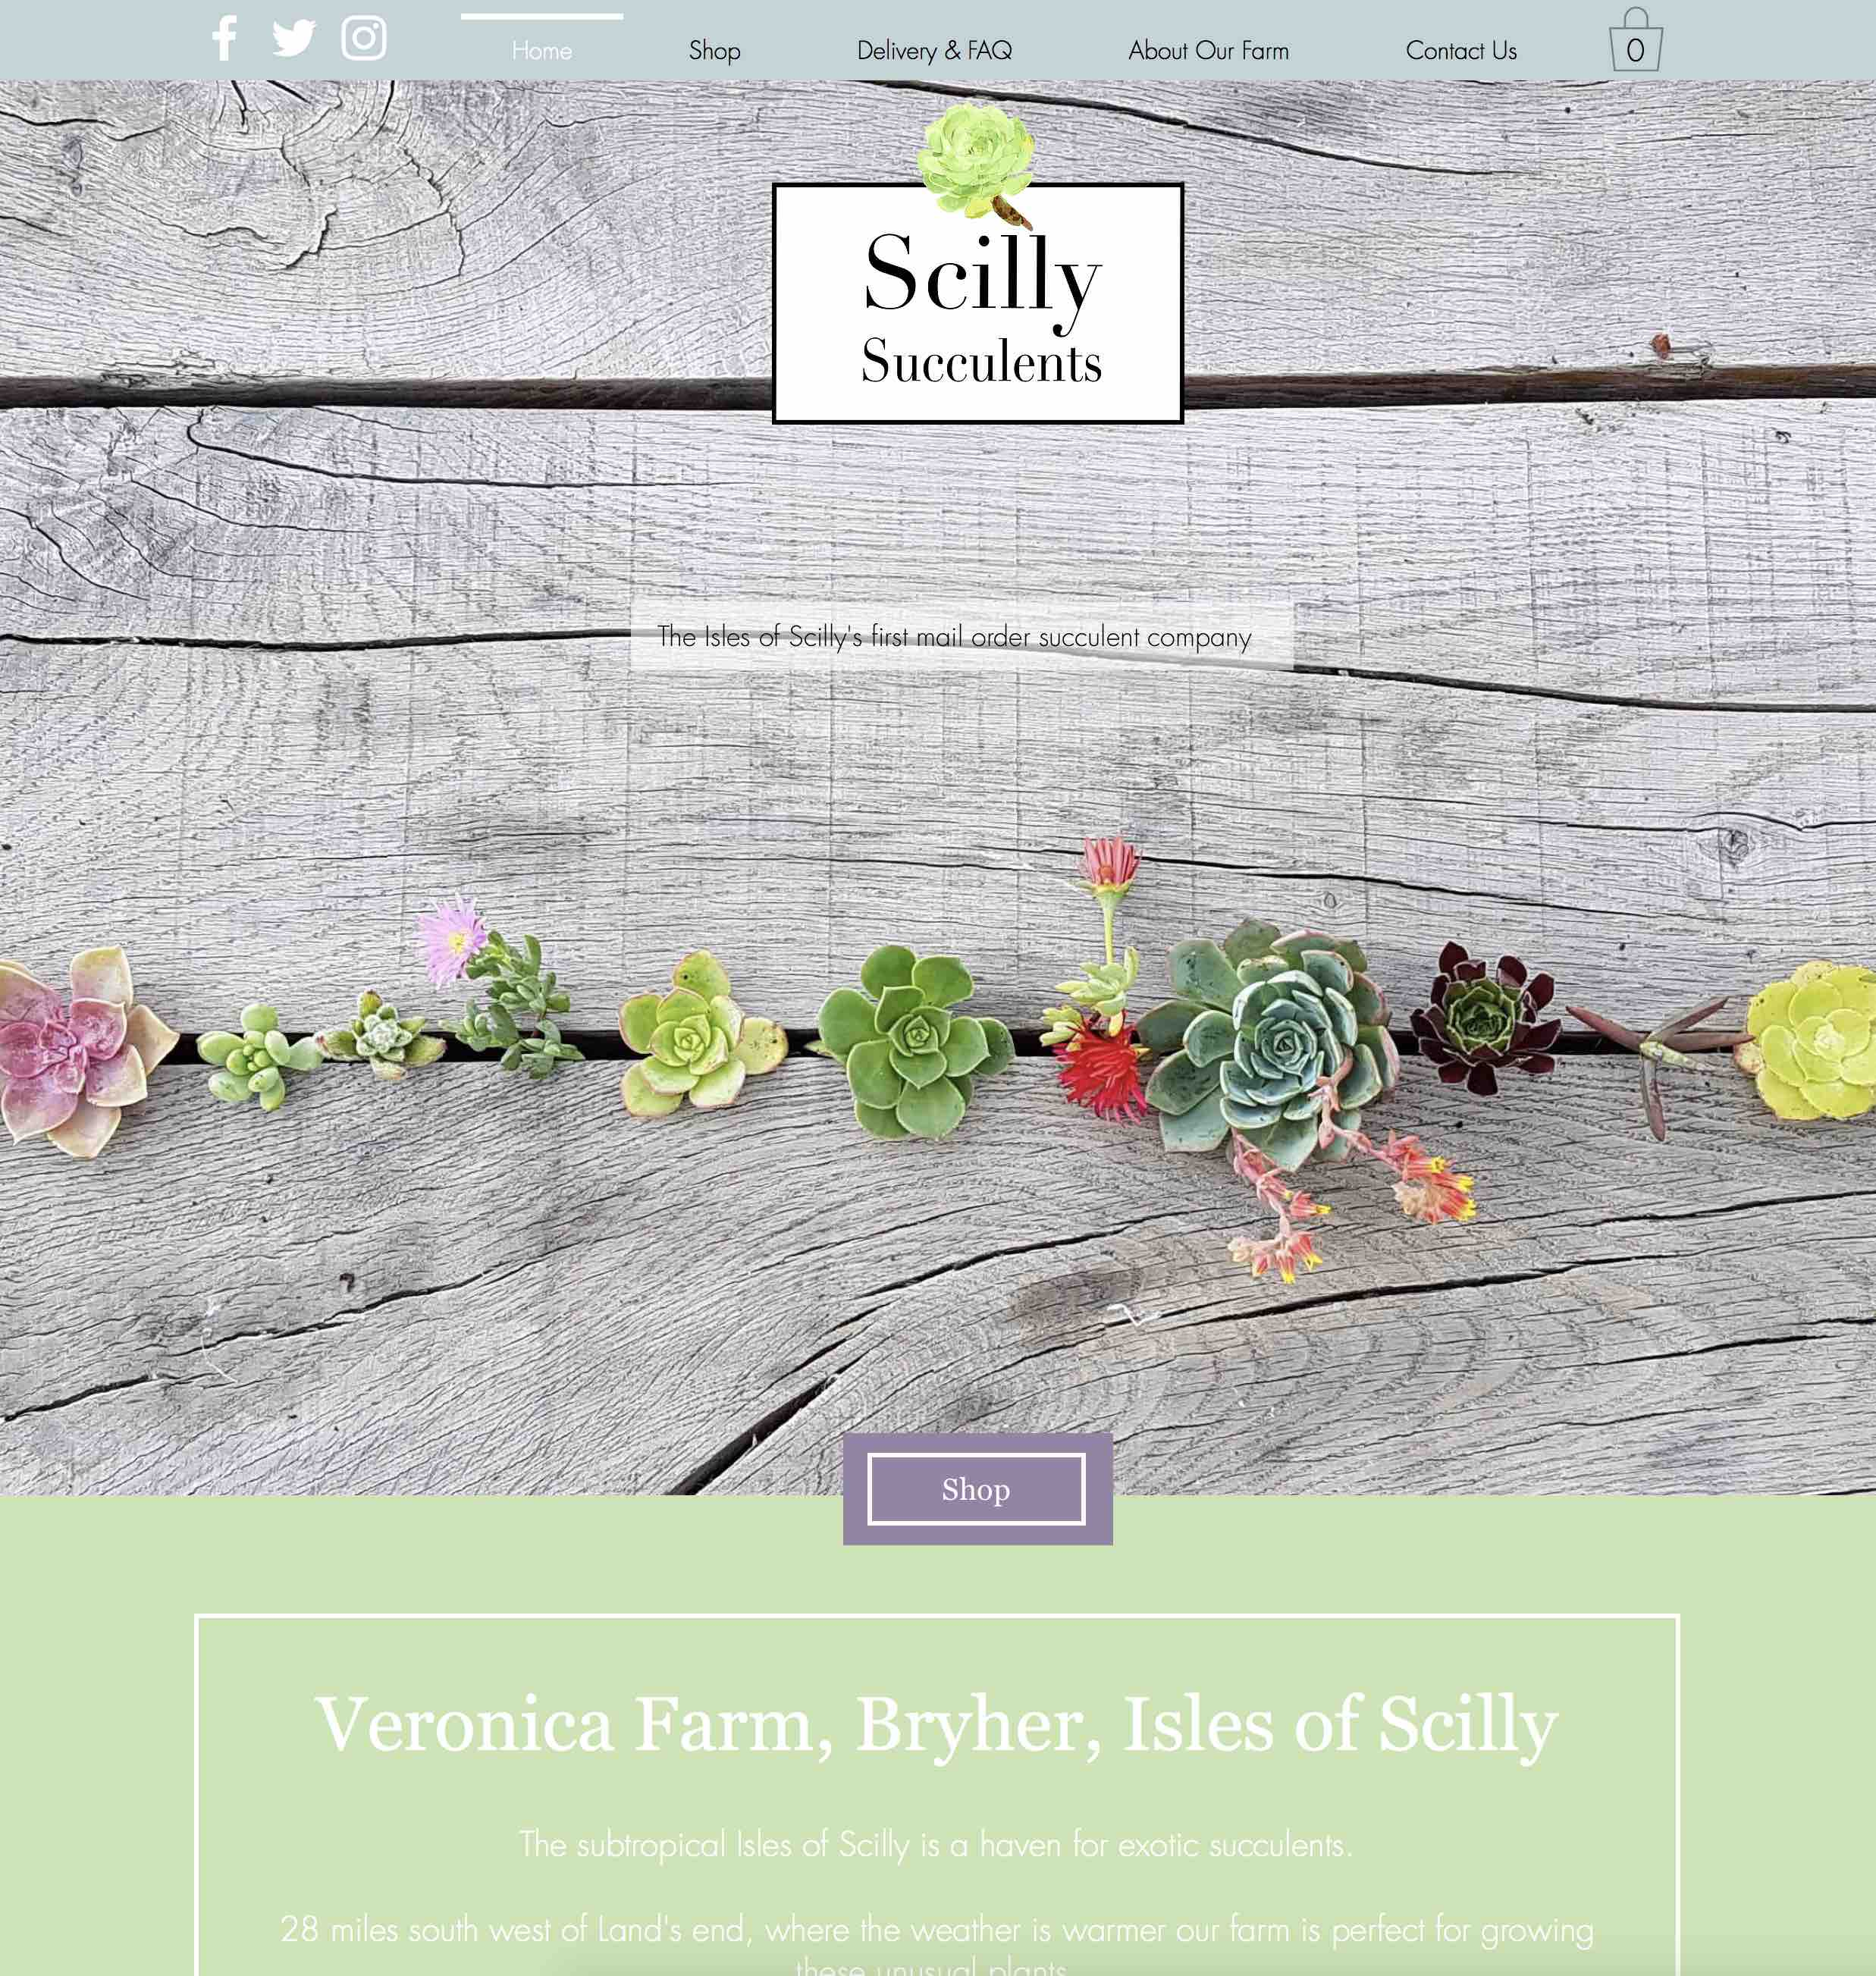 Scilly Succulents